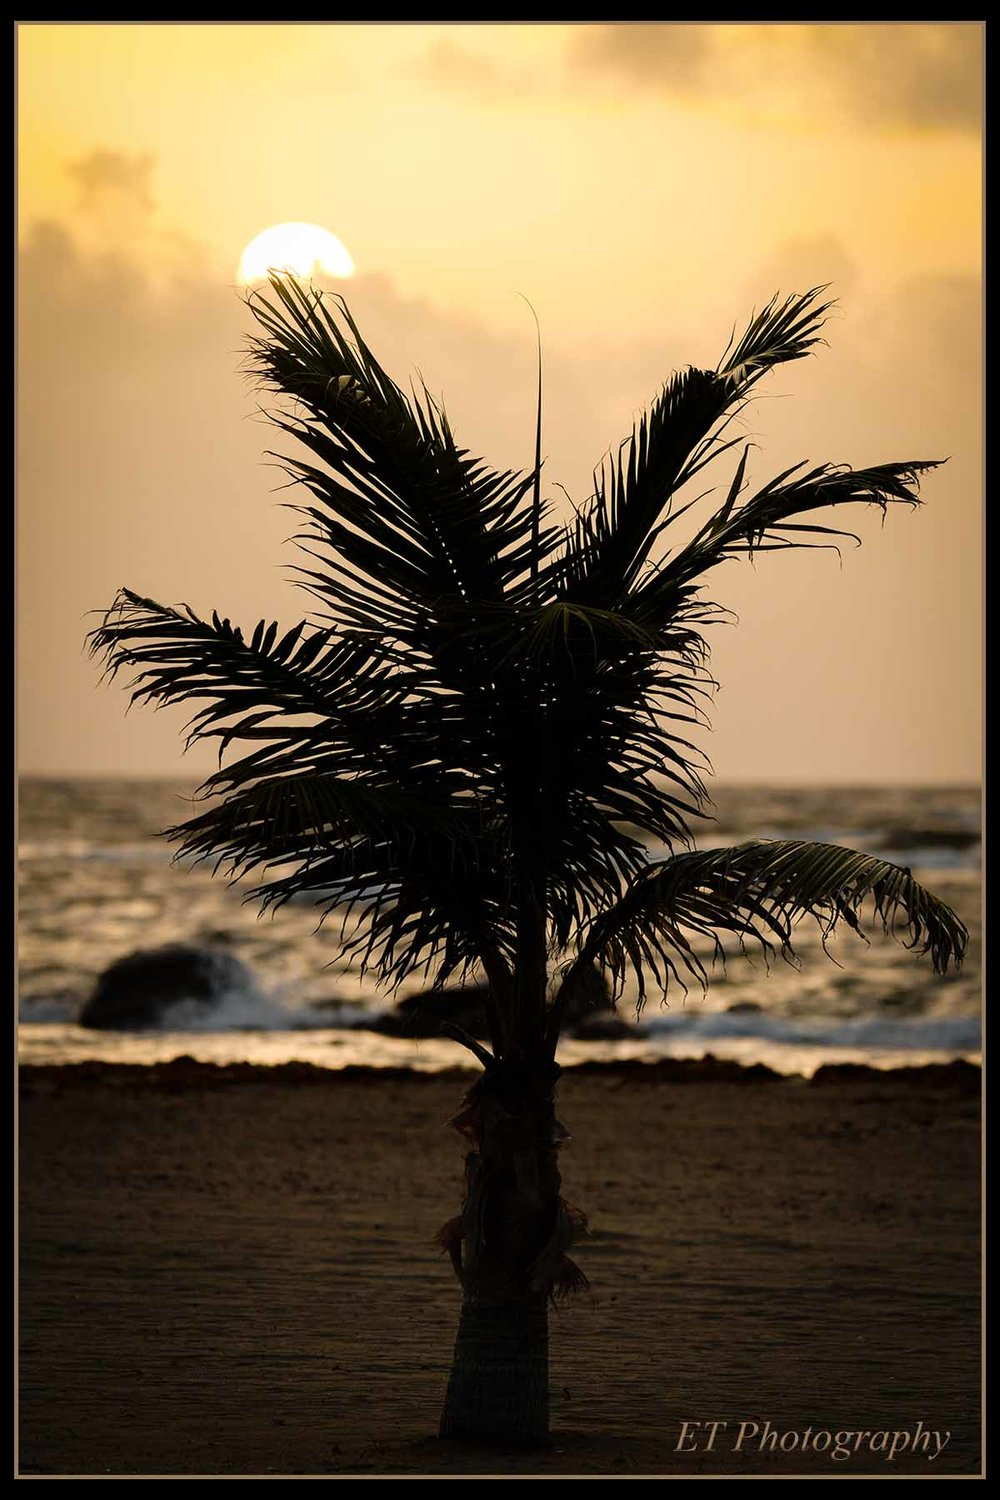 A single palm tree greeting the morning sun.